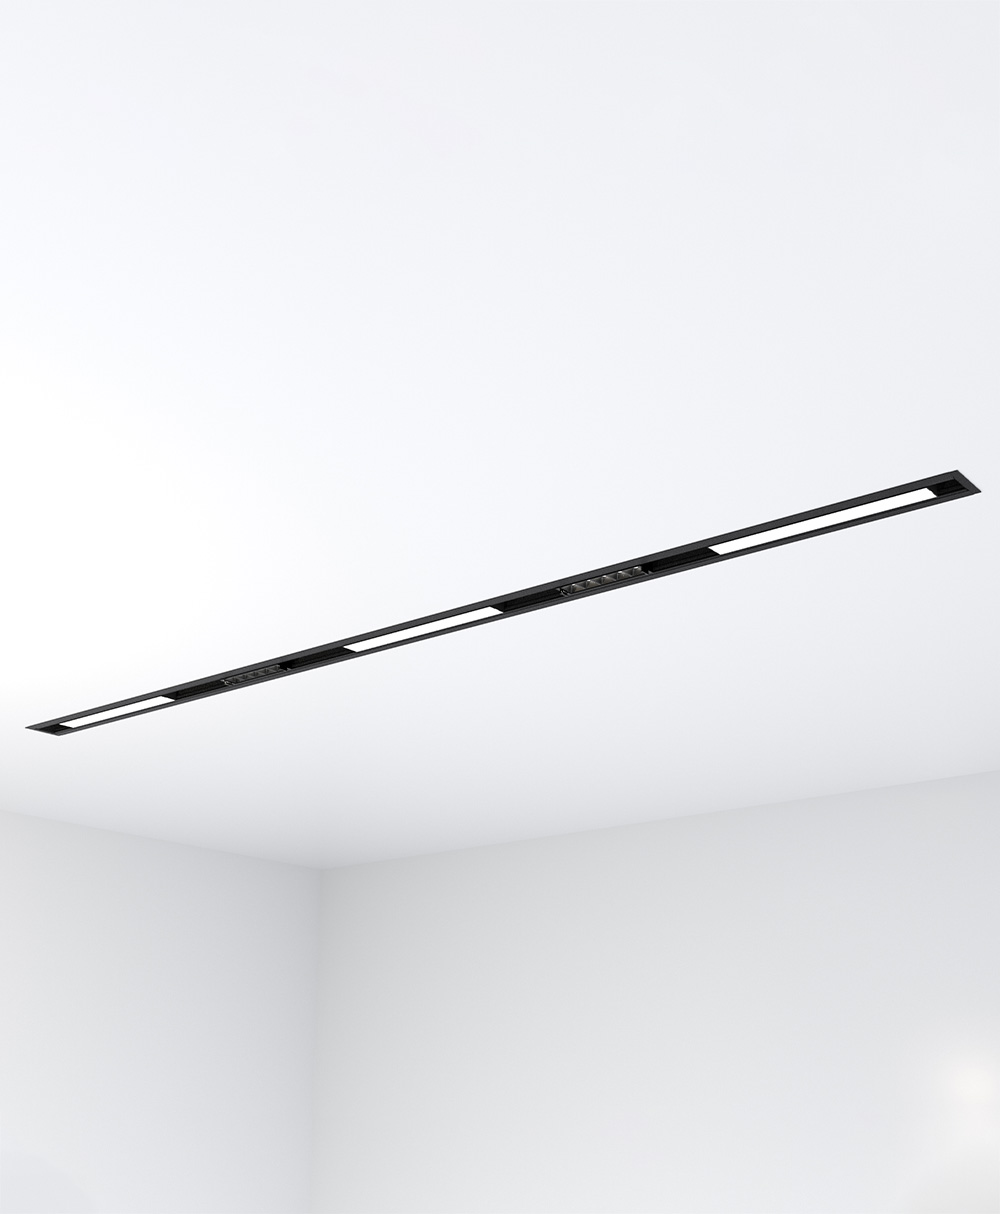 6' Recess-Mount KLICK Track with 3 Solid Lightbars and 2 Multisource Lightbars, 3300 Lumens, 3500 K